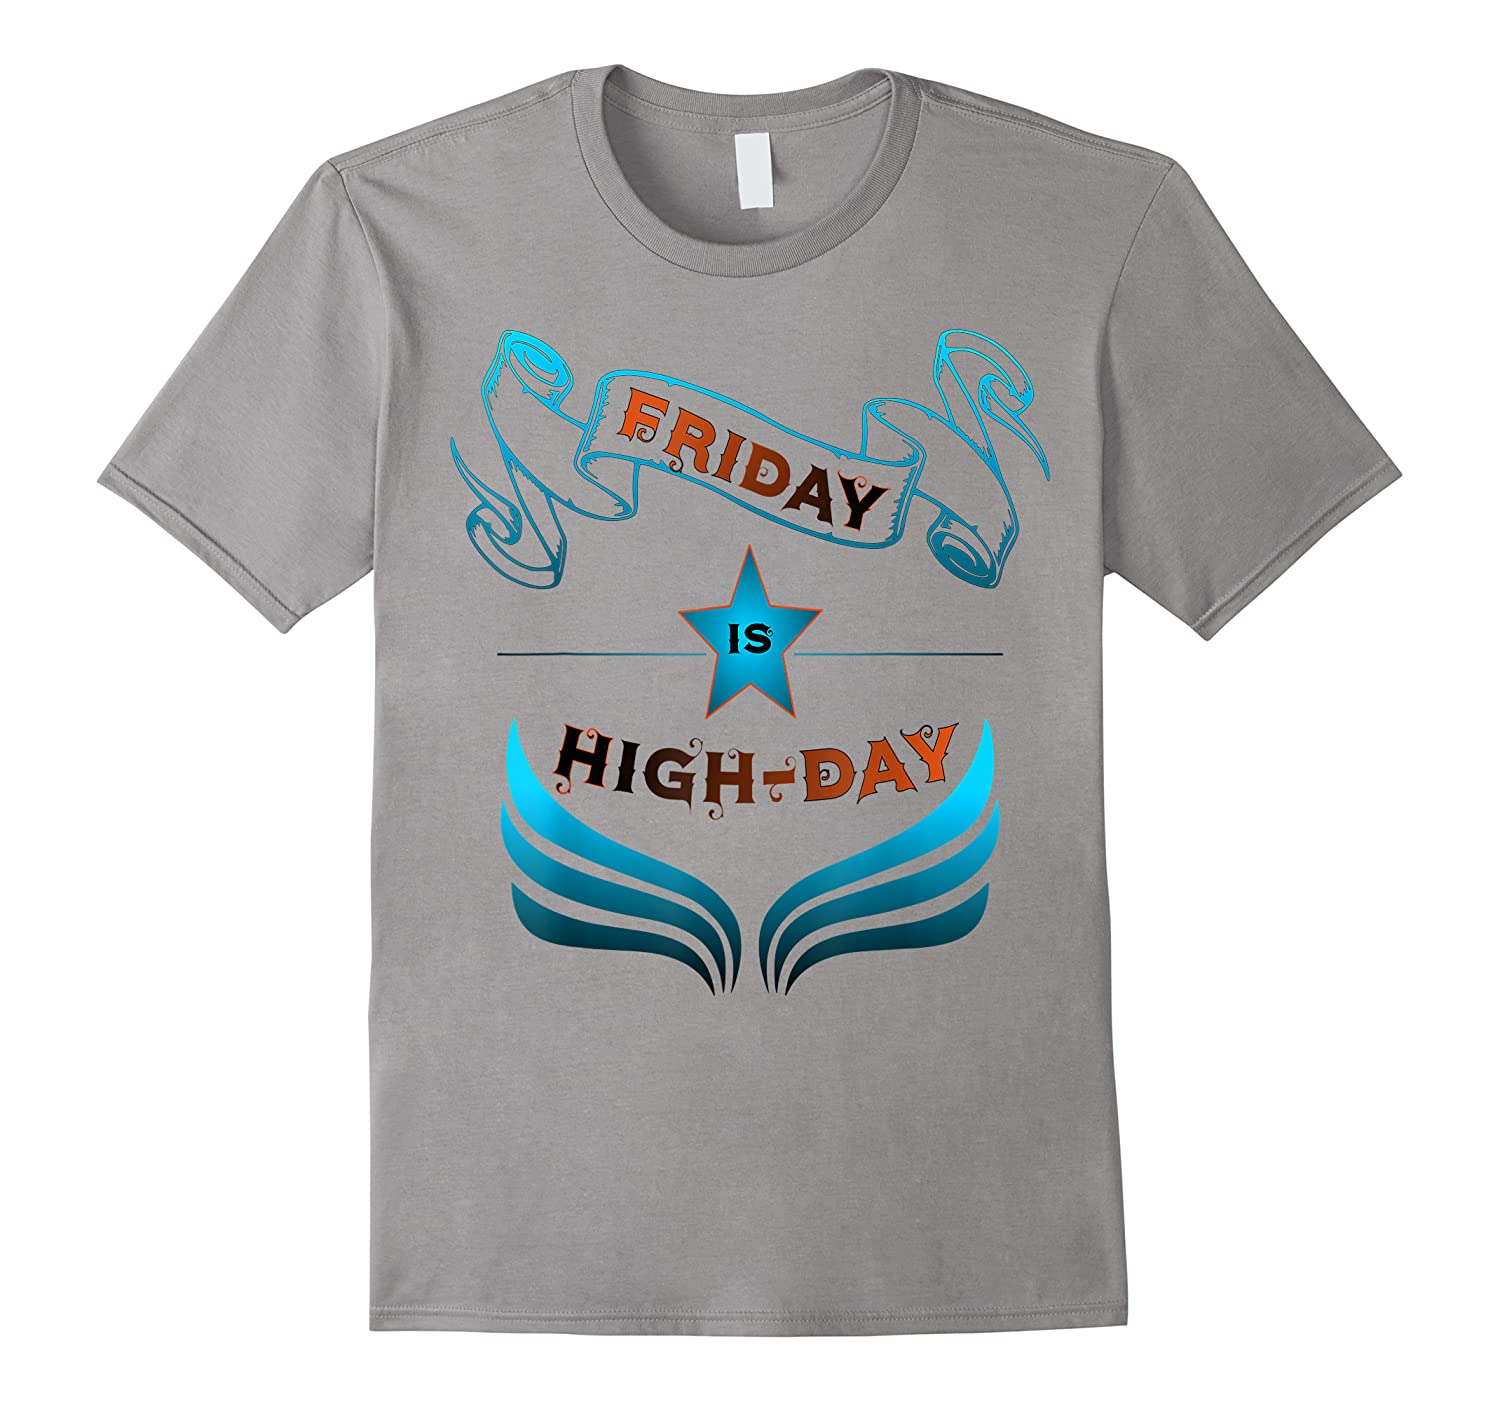 Friday Is Highday T-shirt